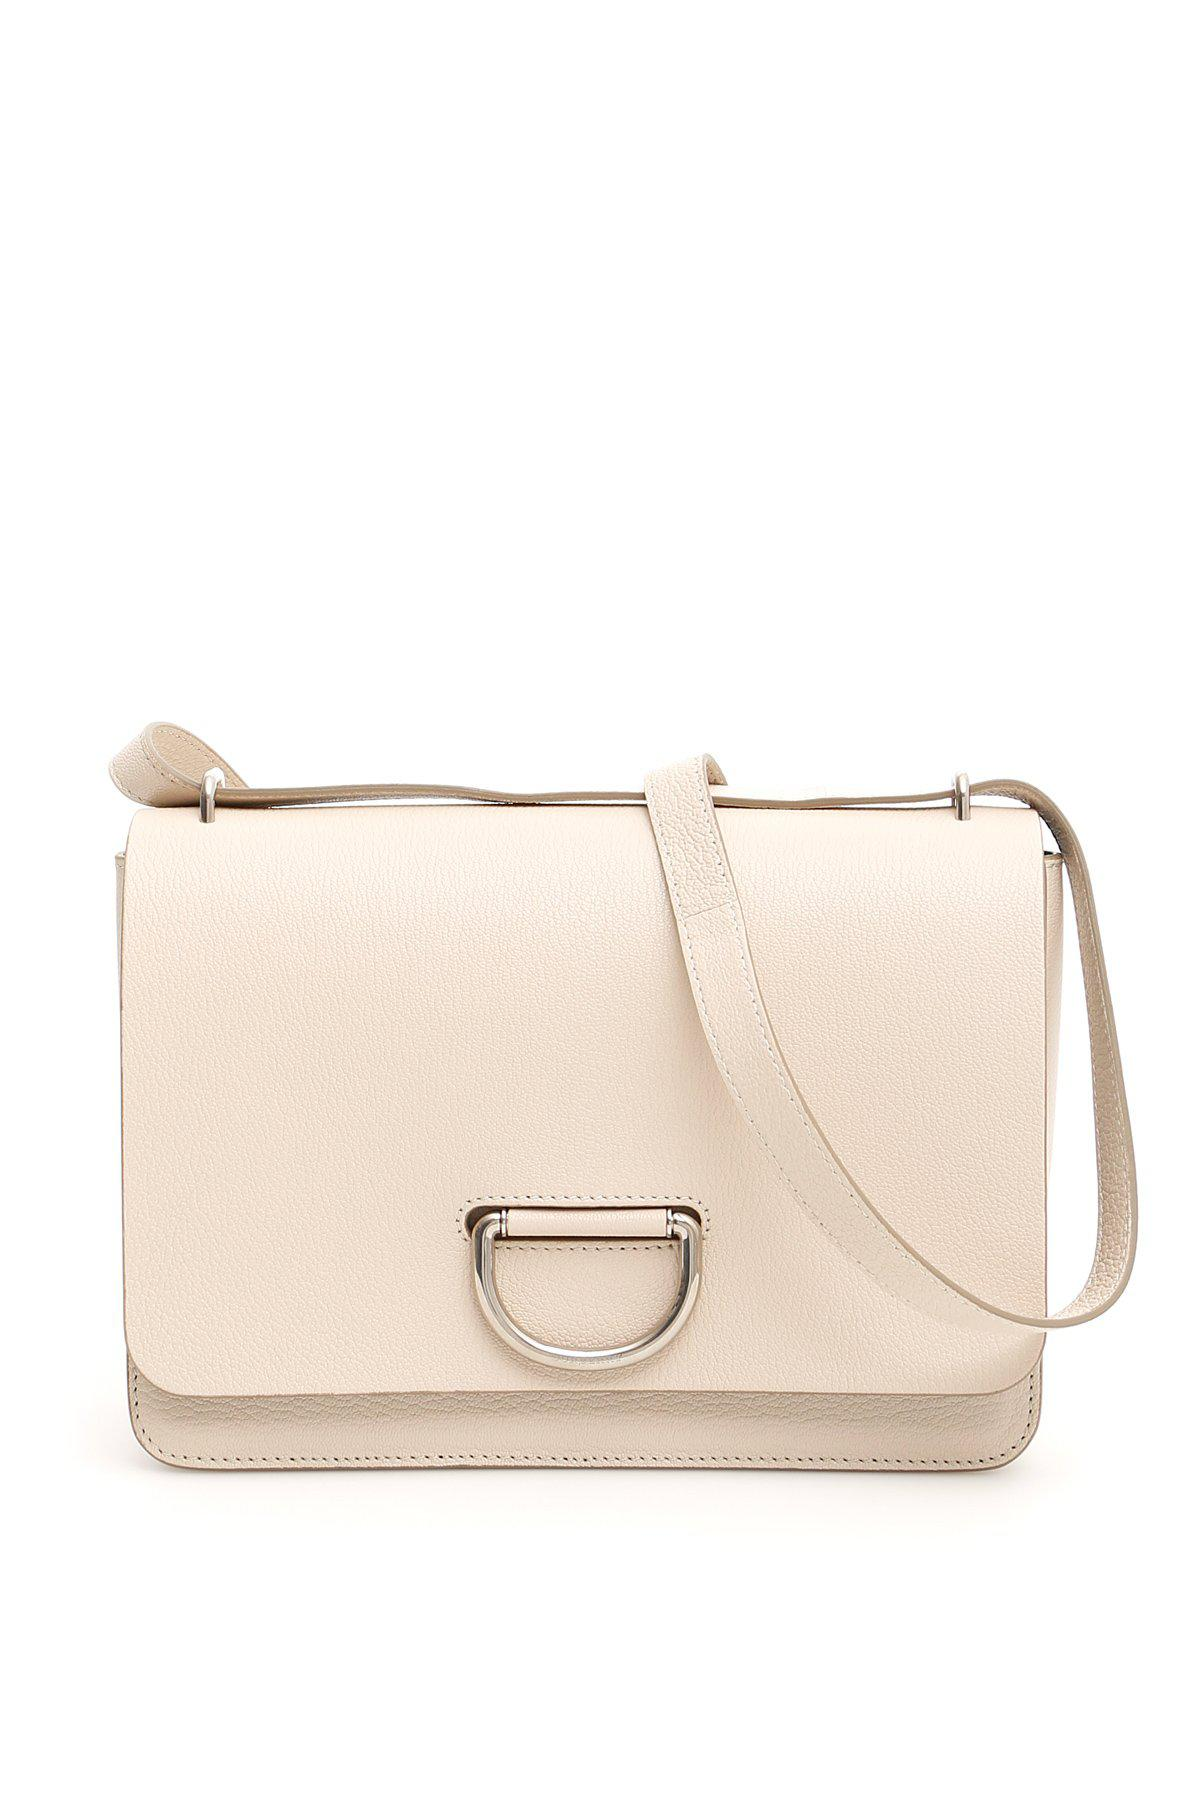 43a6935fd6cf Lyst - Burberry D-ring Shoulder Bag in Natural